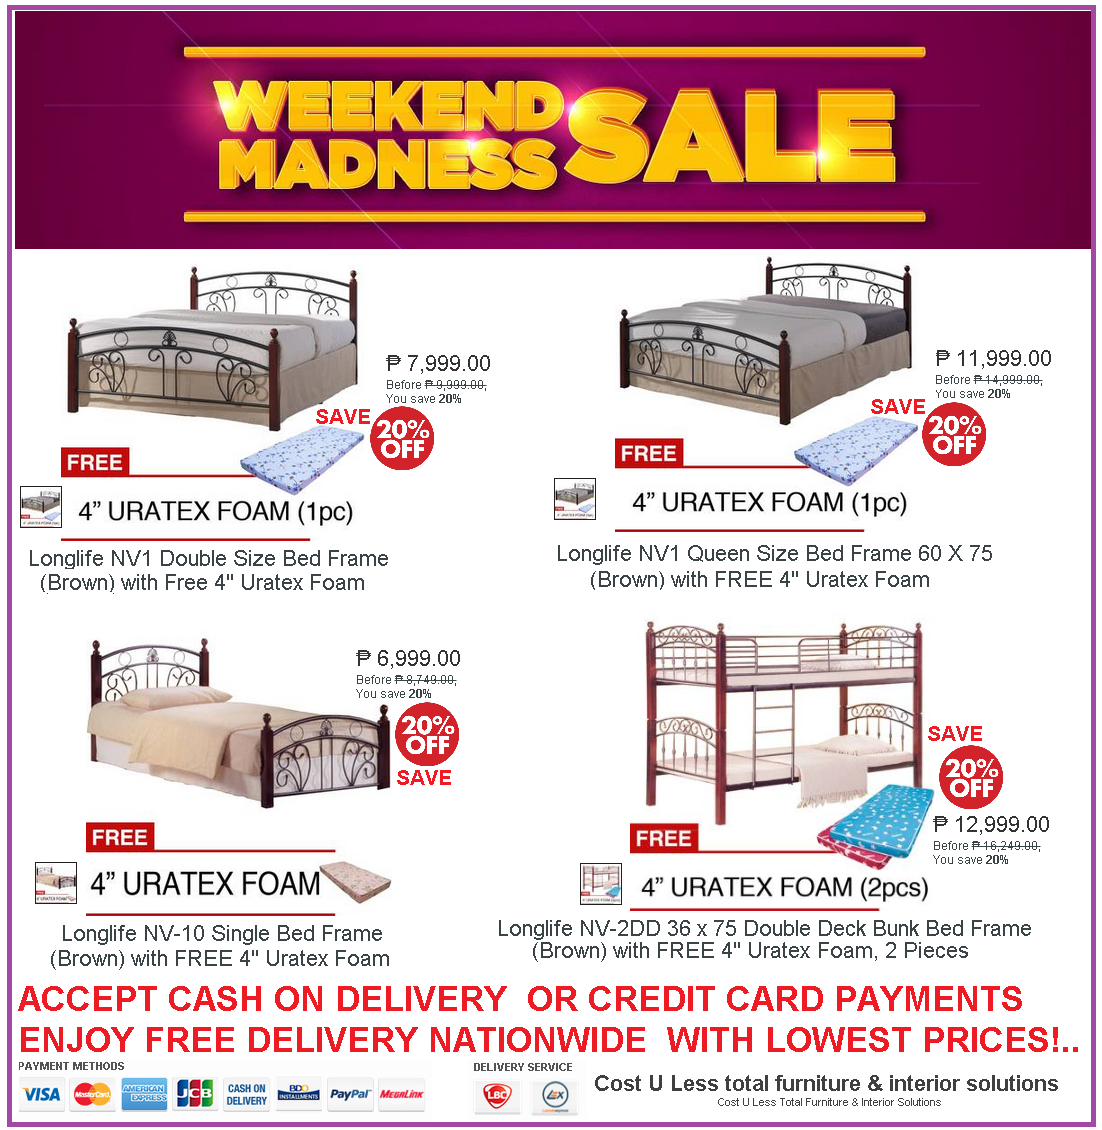 Avail 20 Off Discount On Bed Frame And Get 4 Uratex Foam For